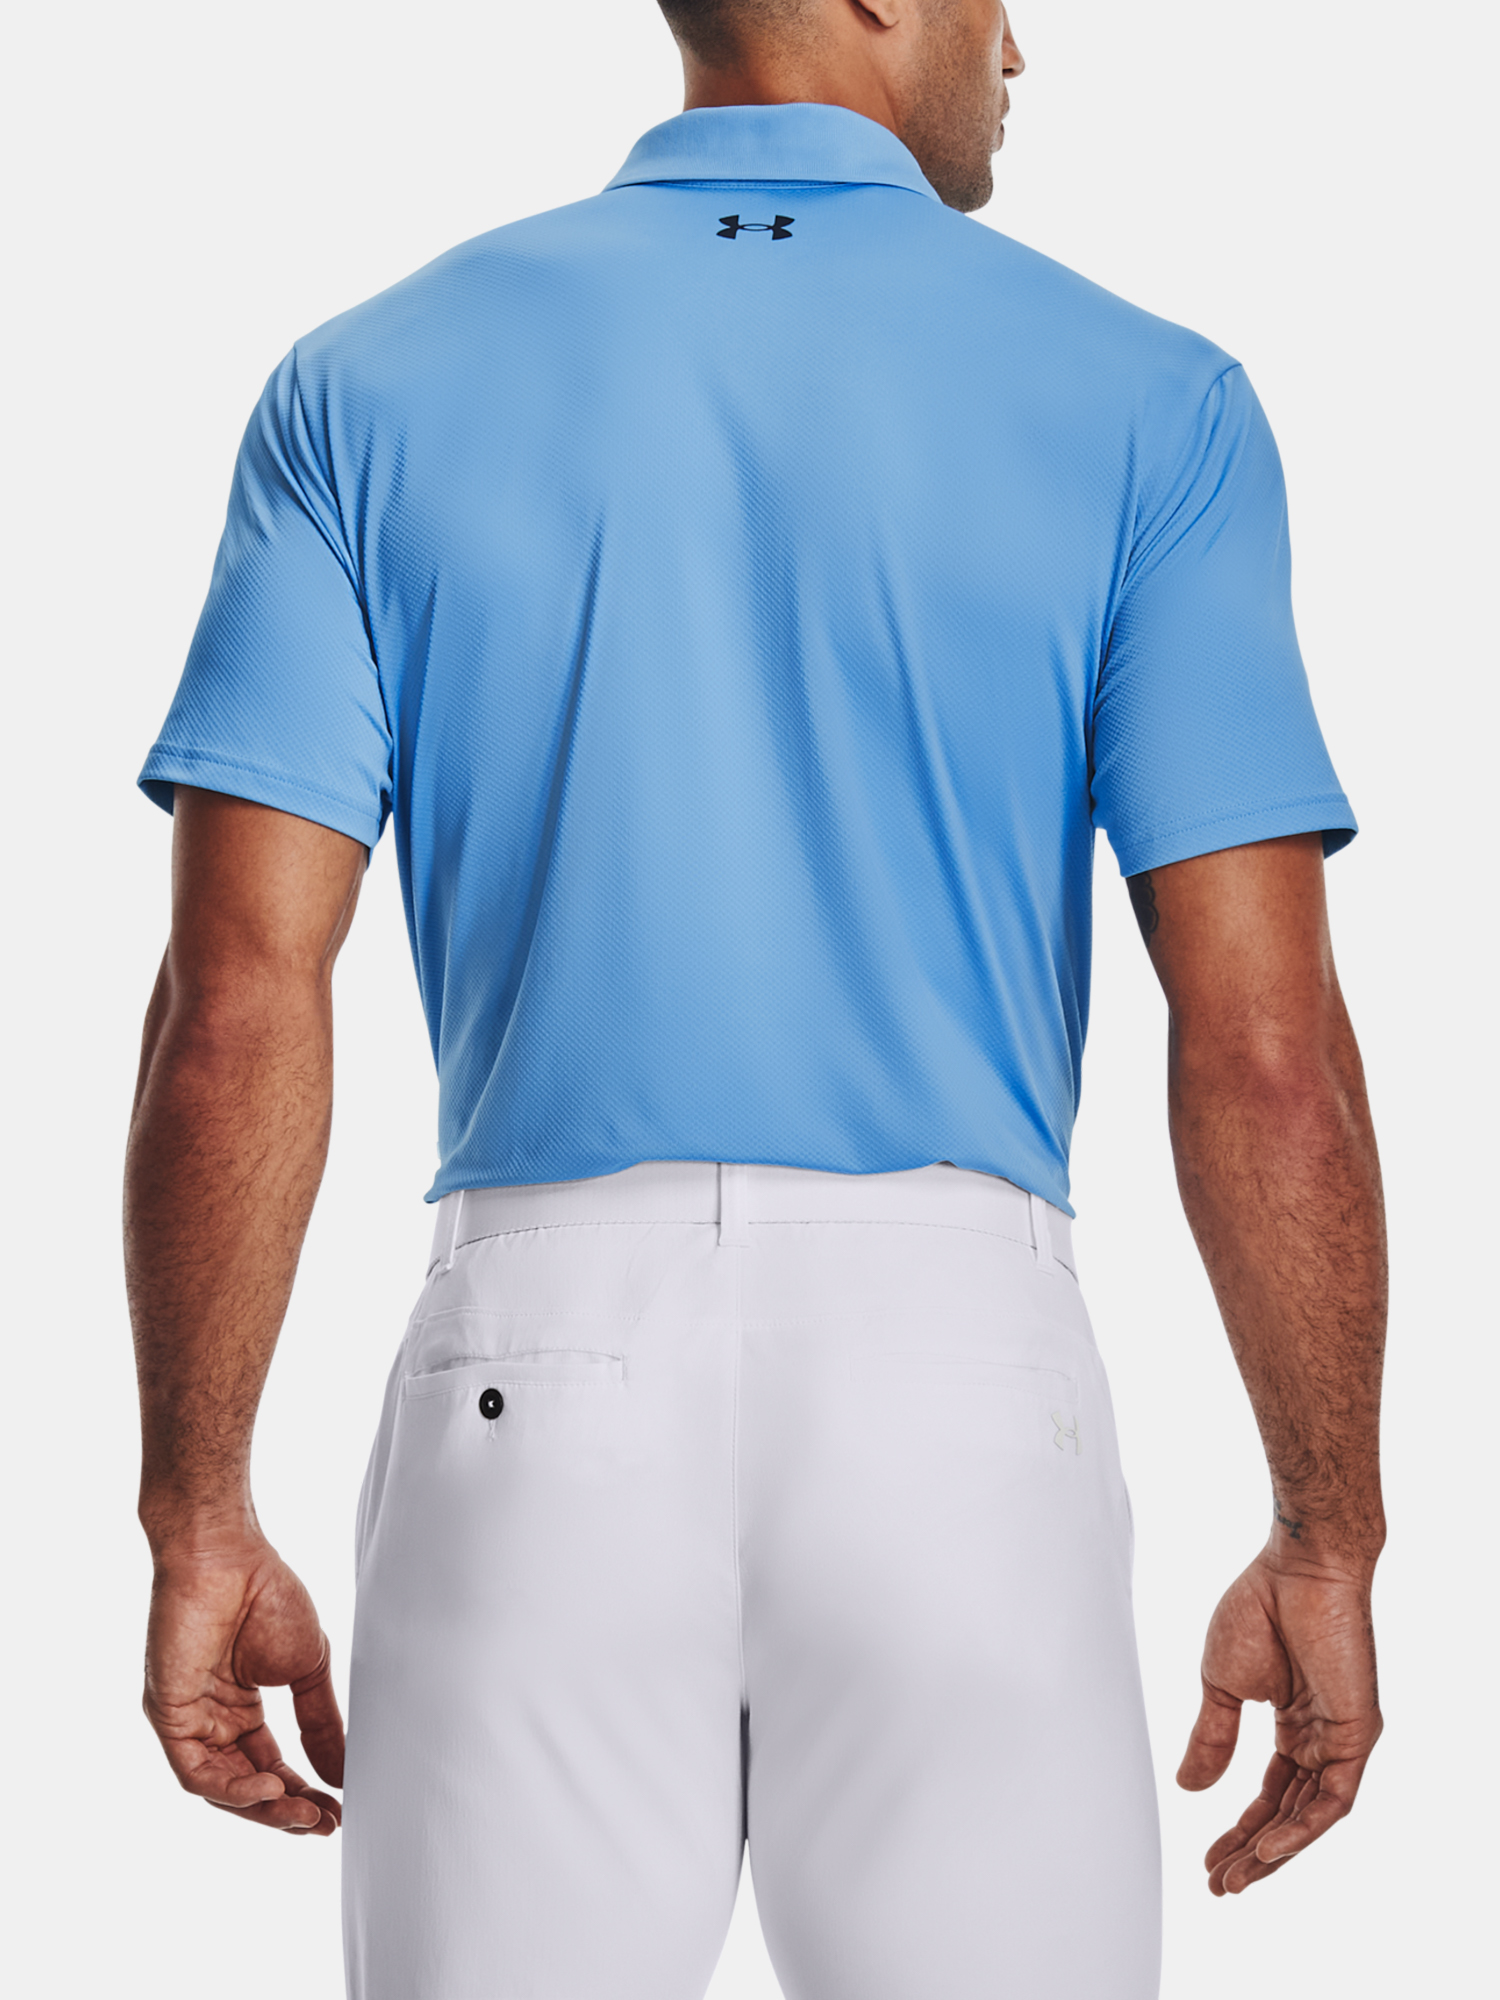 Tričko Under Armour Performance Polo 2.0-BLU (2)